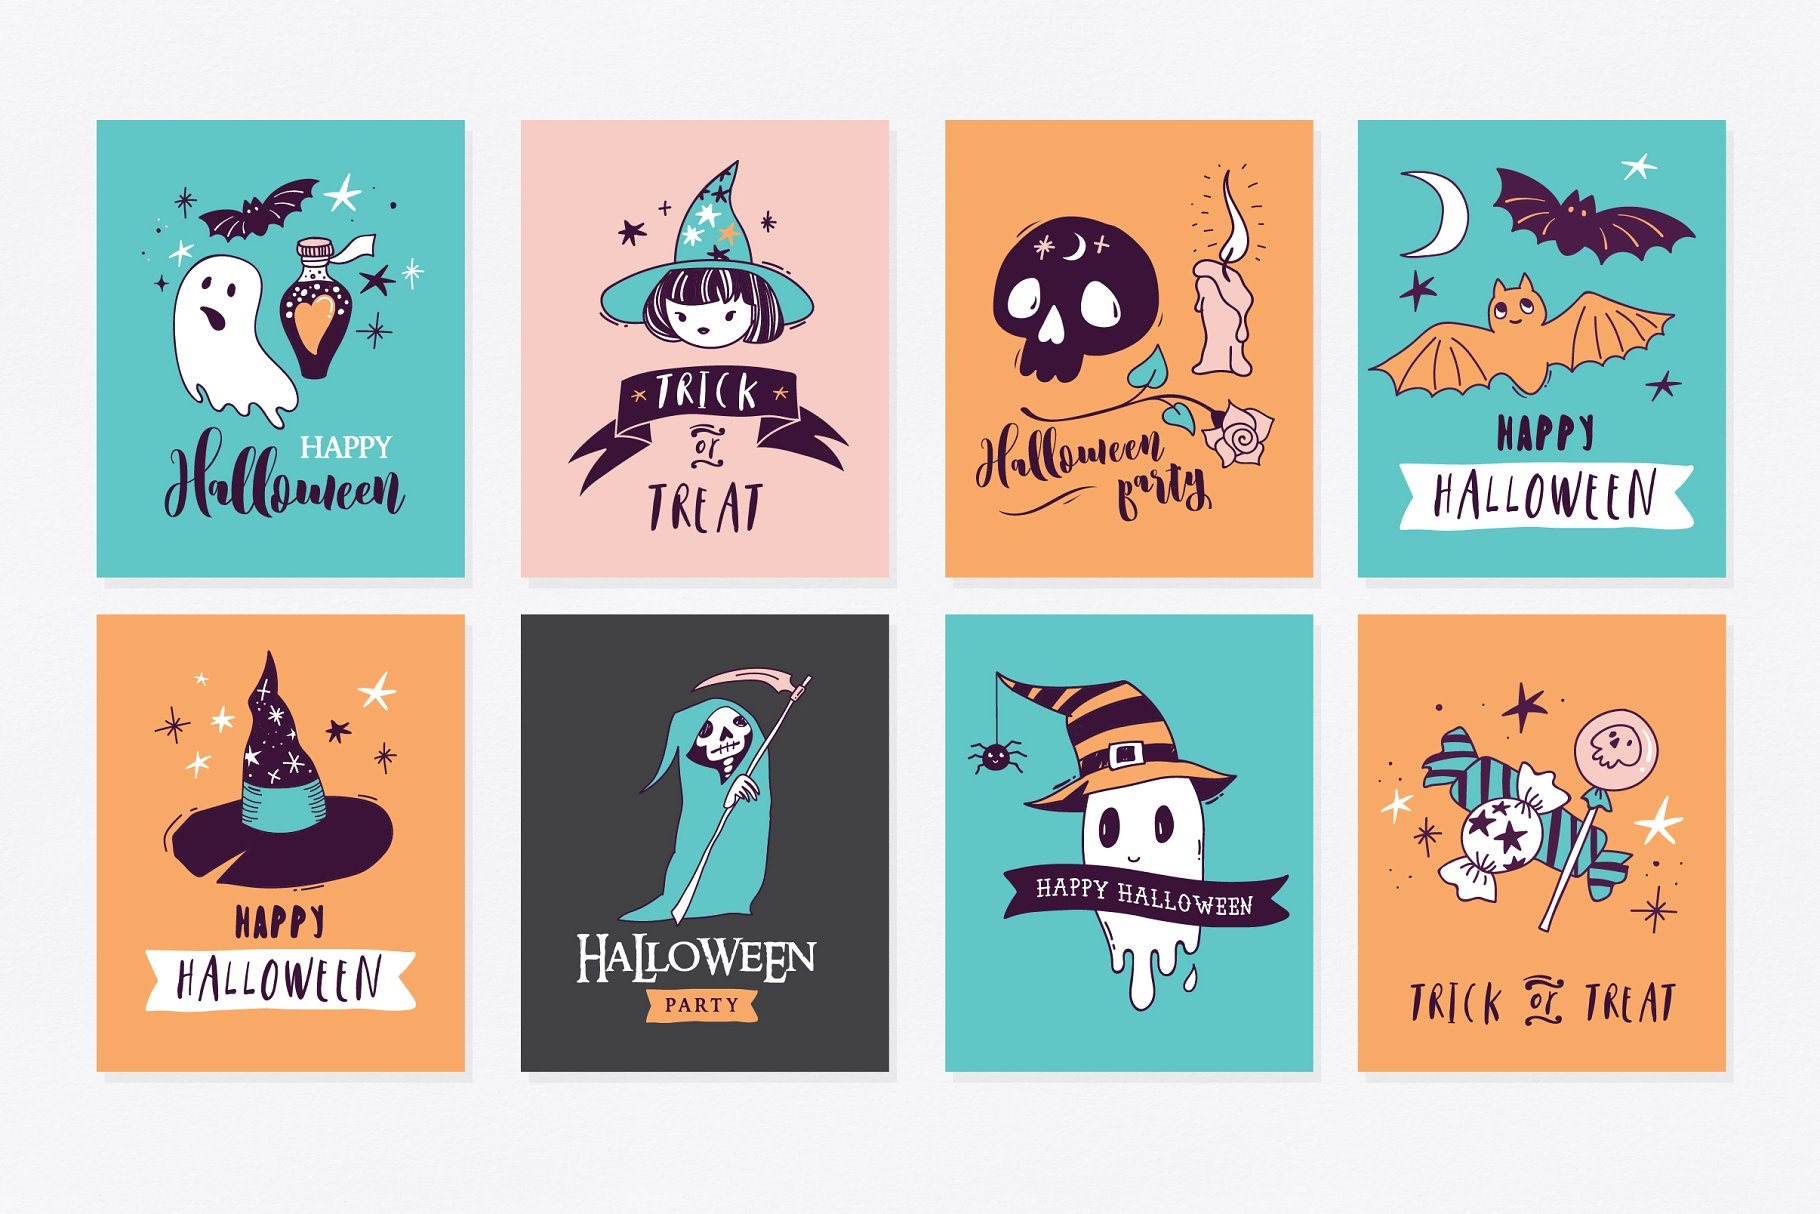 halloween-layout-04-.jpg